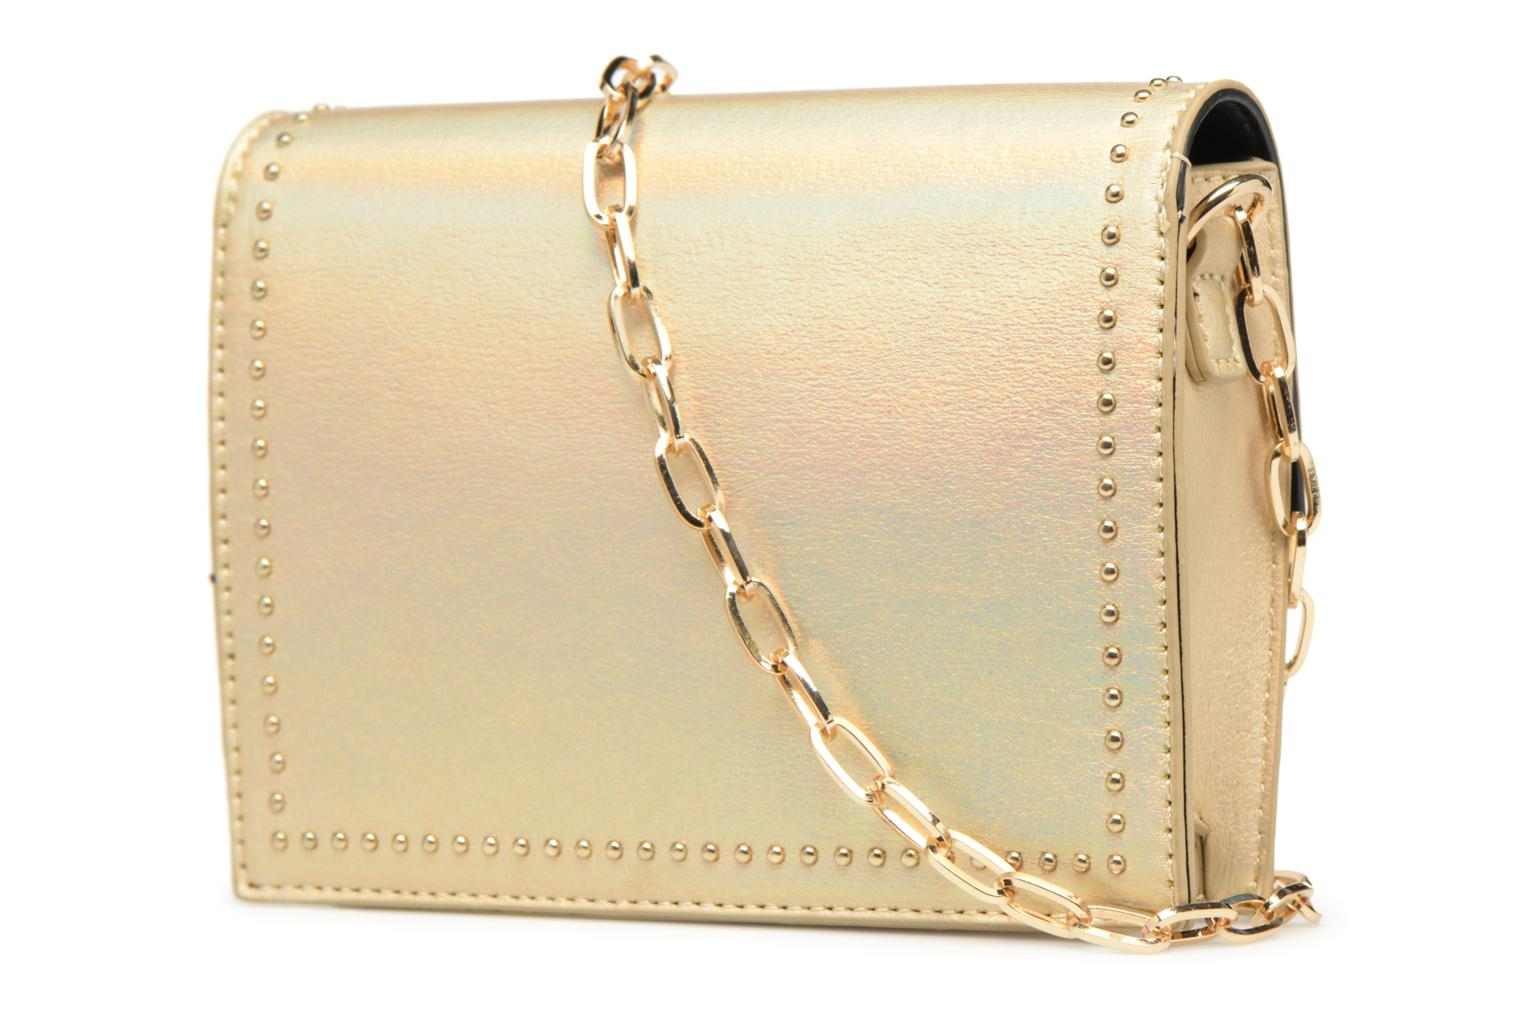 Street crossbody chainstrap Mettalic Gold Level rTxS80wTq